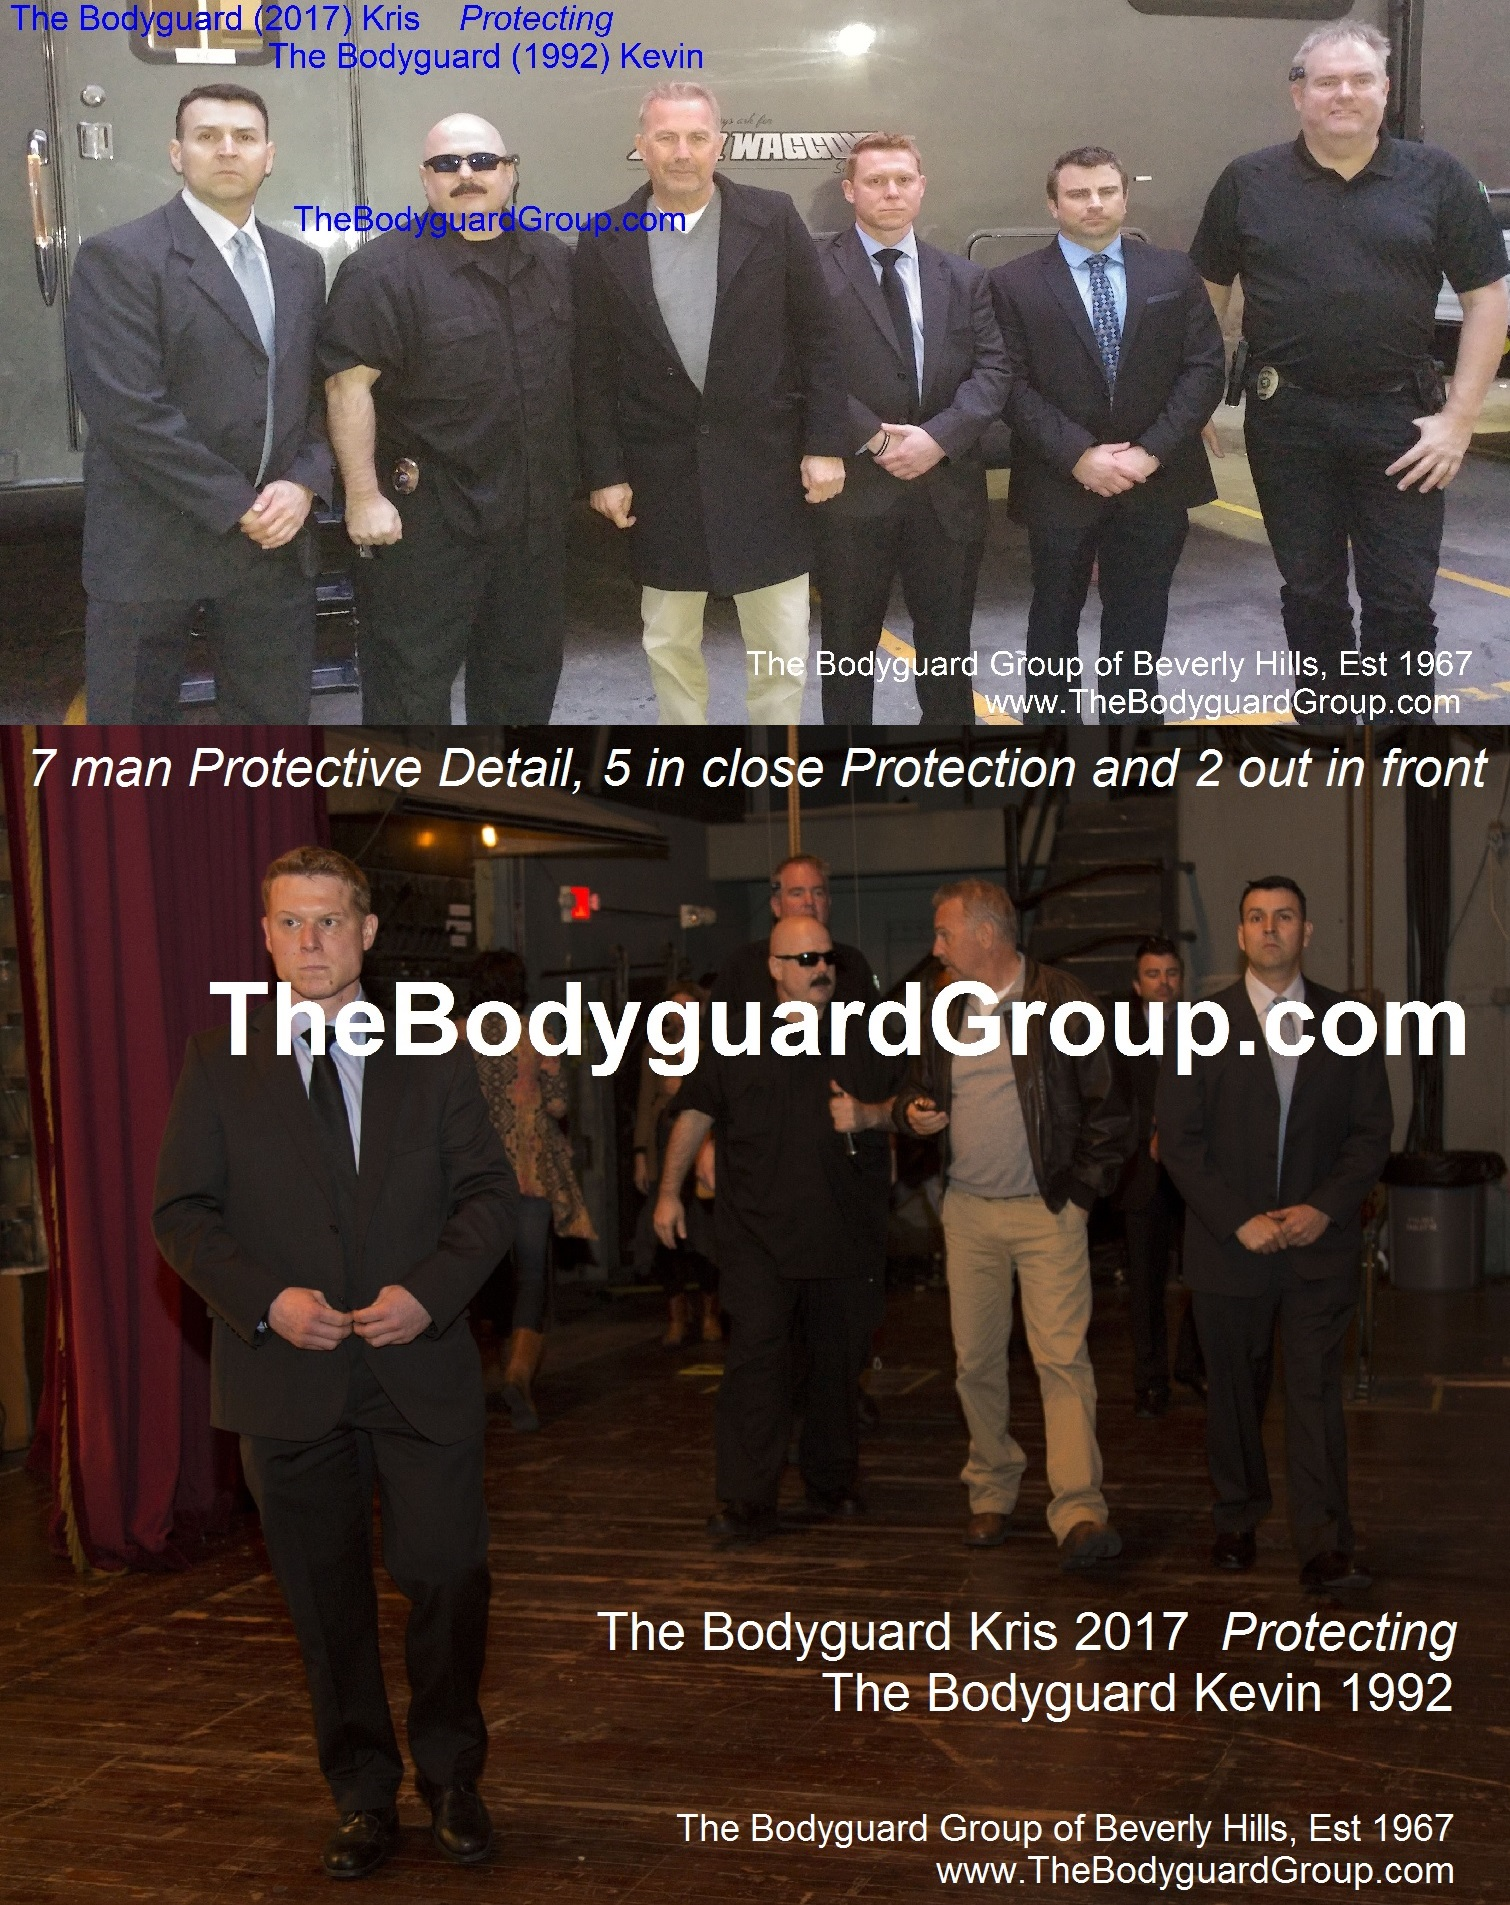 Celebrity Bodyguards Kris Herzog and The Bodyguard Group of Beverly Hills Protecting Kevin Costner 2017